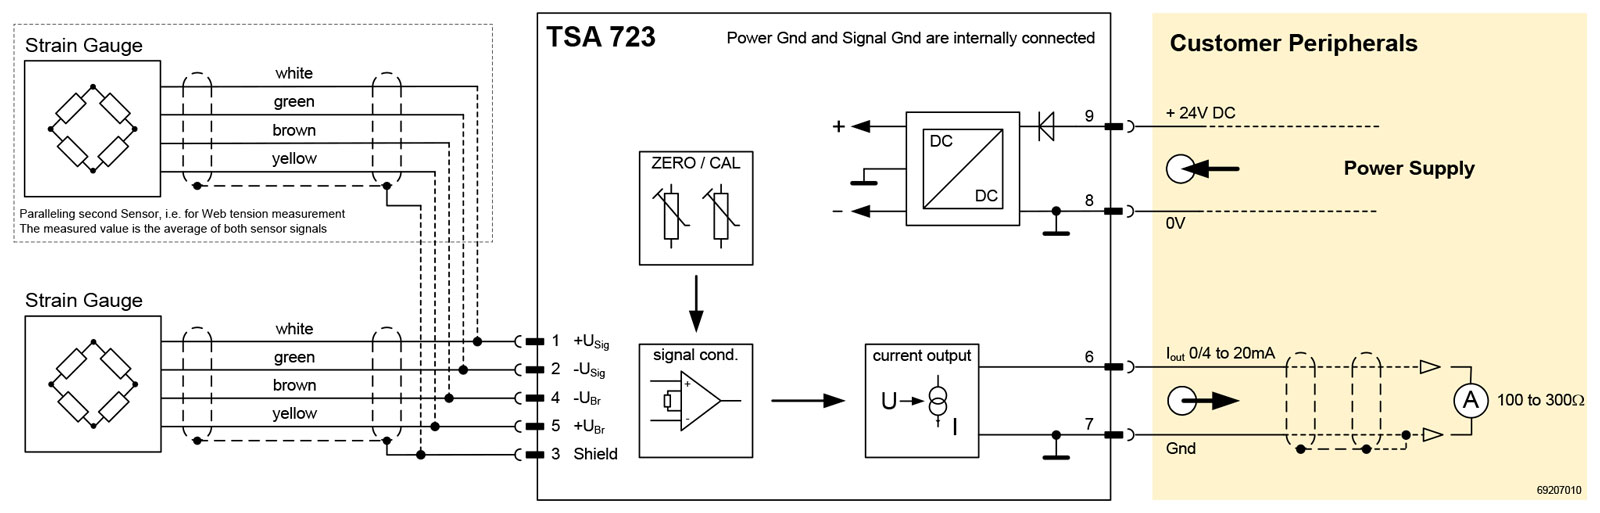 TSA723 Block Diagram - Current output 0 to 20mA or 4 to 20mA